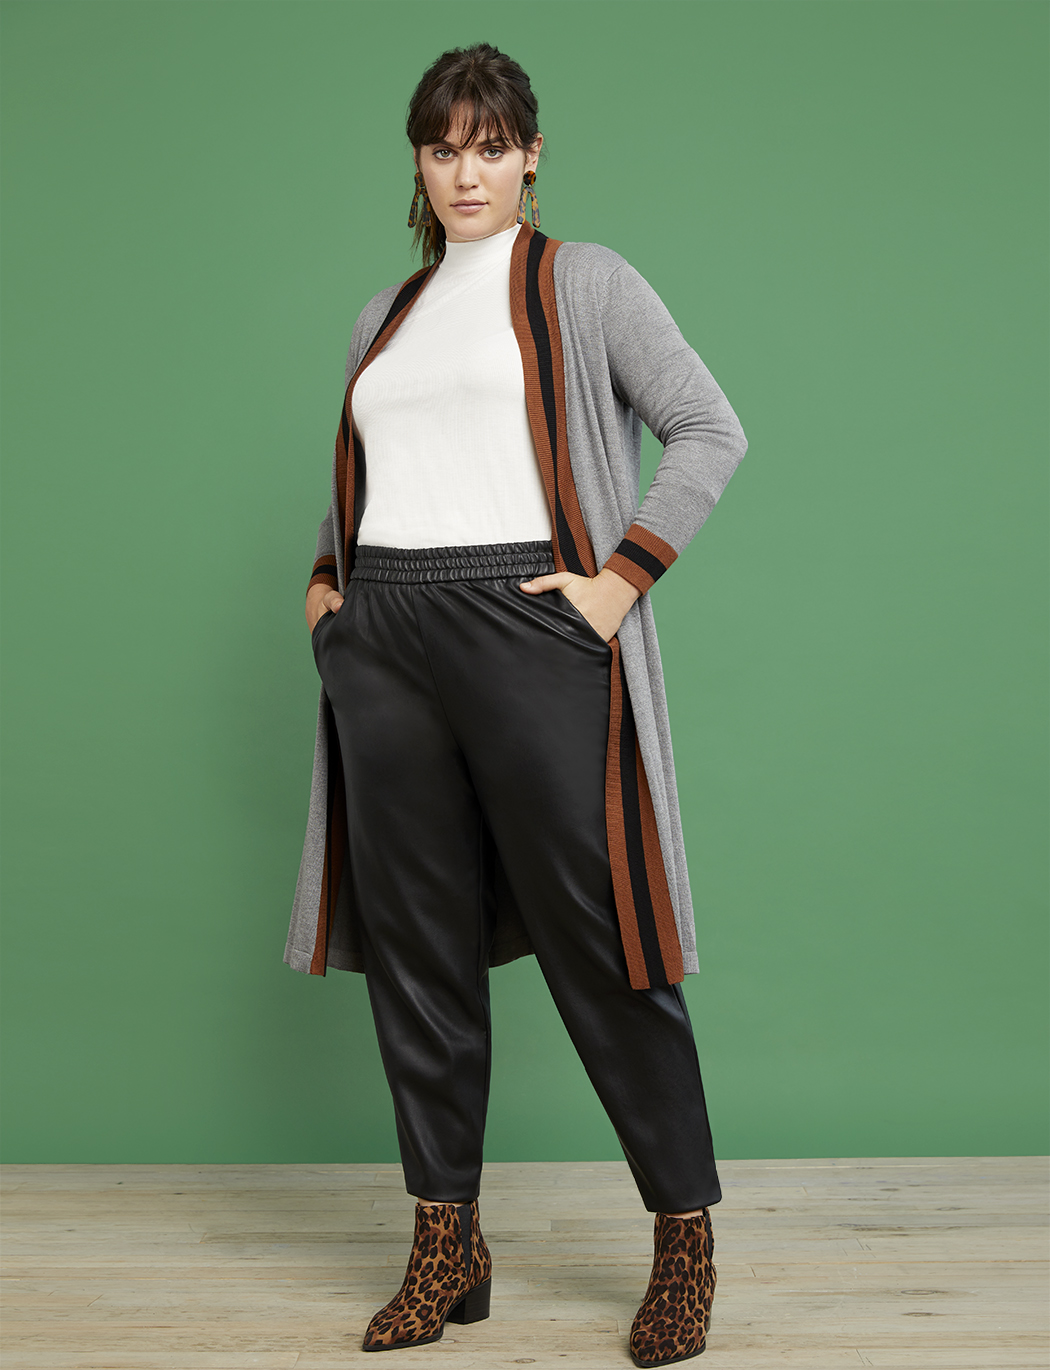 R29 x ELOQUII Faux Leather Jogger